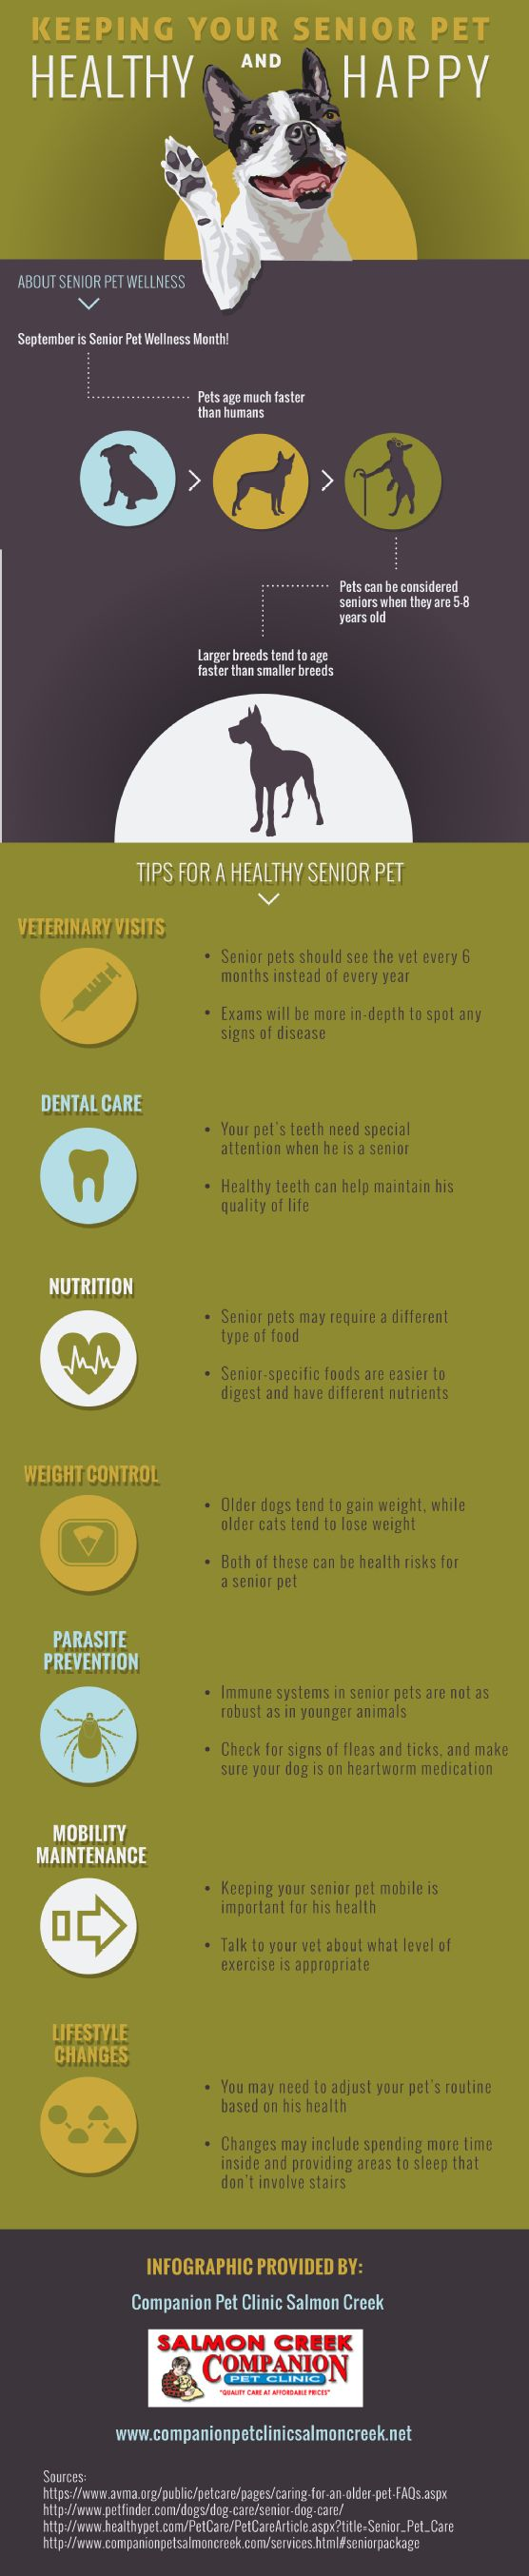 Senior pets should see the vet every 6 months instead of every year so the vet can spot early signs of disease. This infographic from a veterinarian in Vancouver, Washington offers more tips for caring for a senior pet.